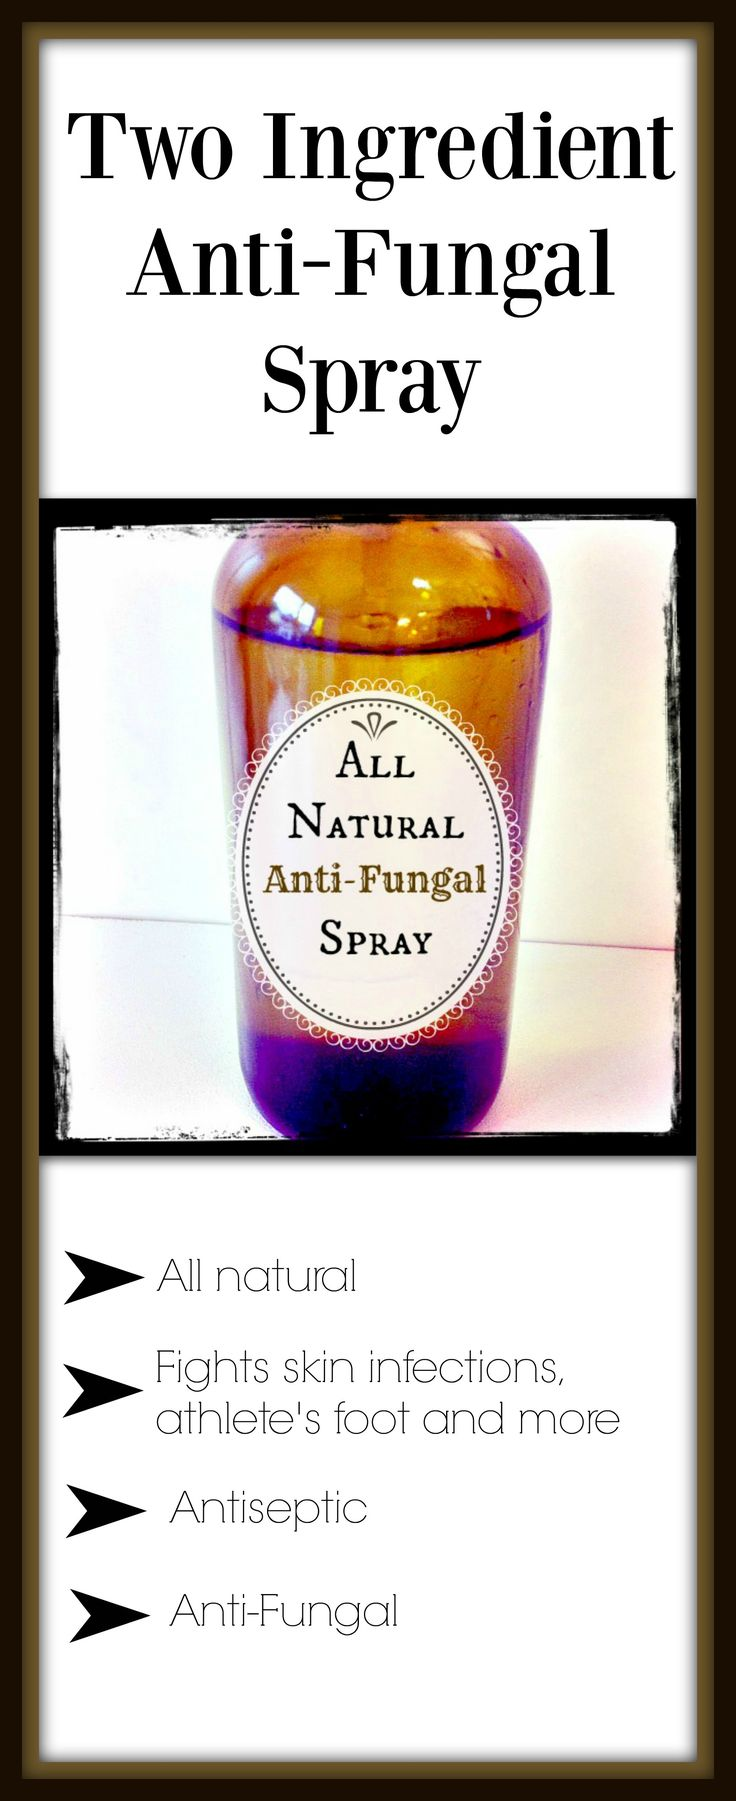 You do not have to buy expensive anti-fungal creams when you can make it at home for just pennies. Fungal problems are usually indicative of a bigger internal issue, but it's a great idea to treat it on the outside with something that is natural and non-toxic. #allnaturalantifungal